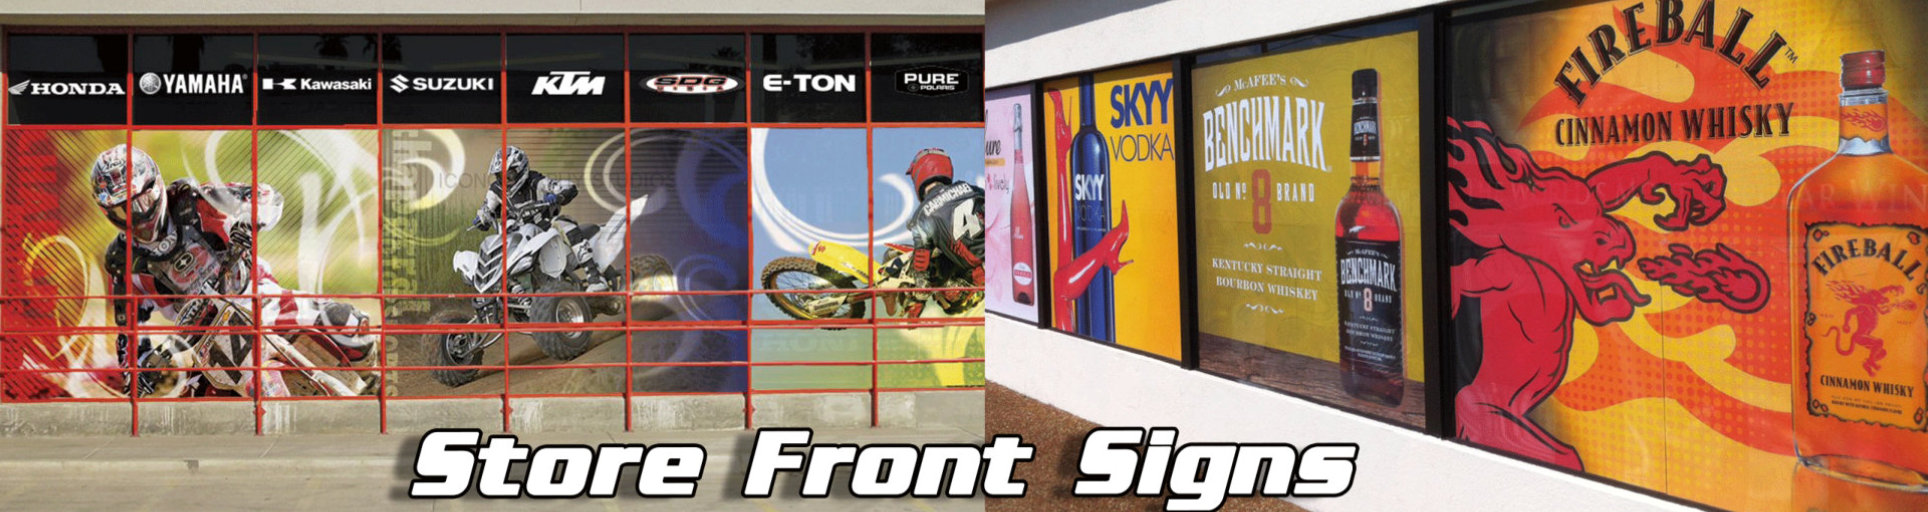 various store front signs